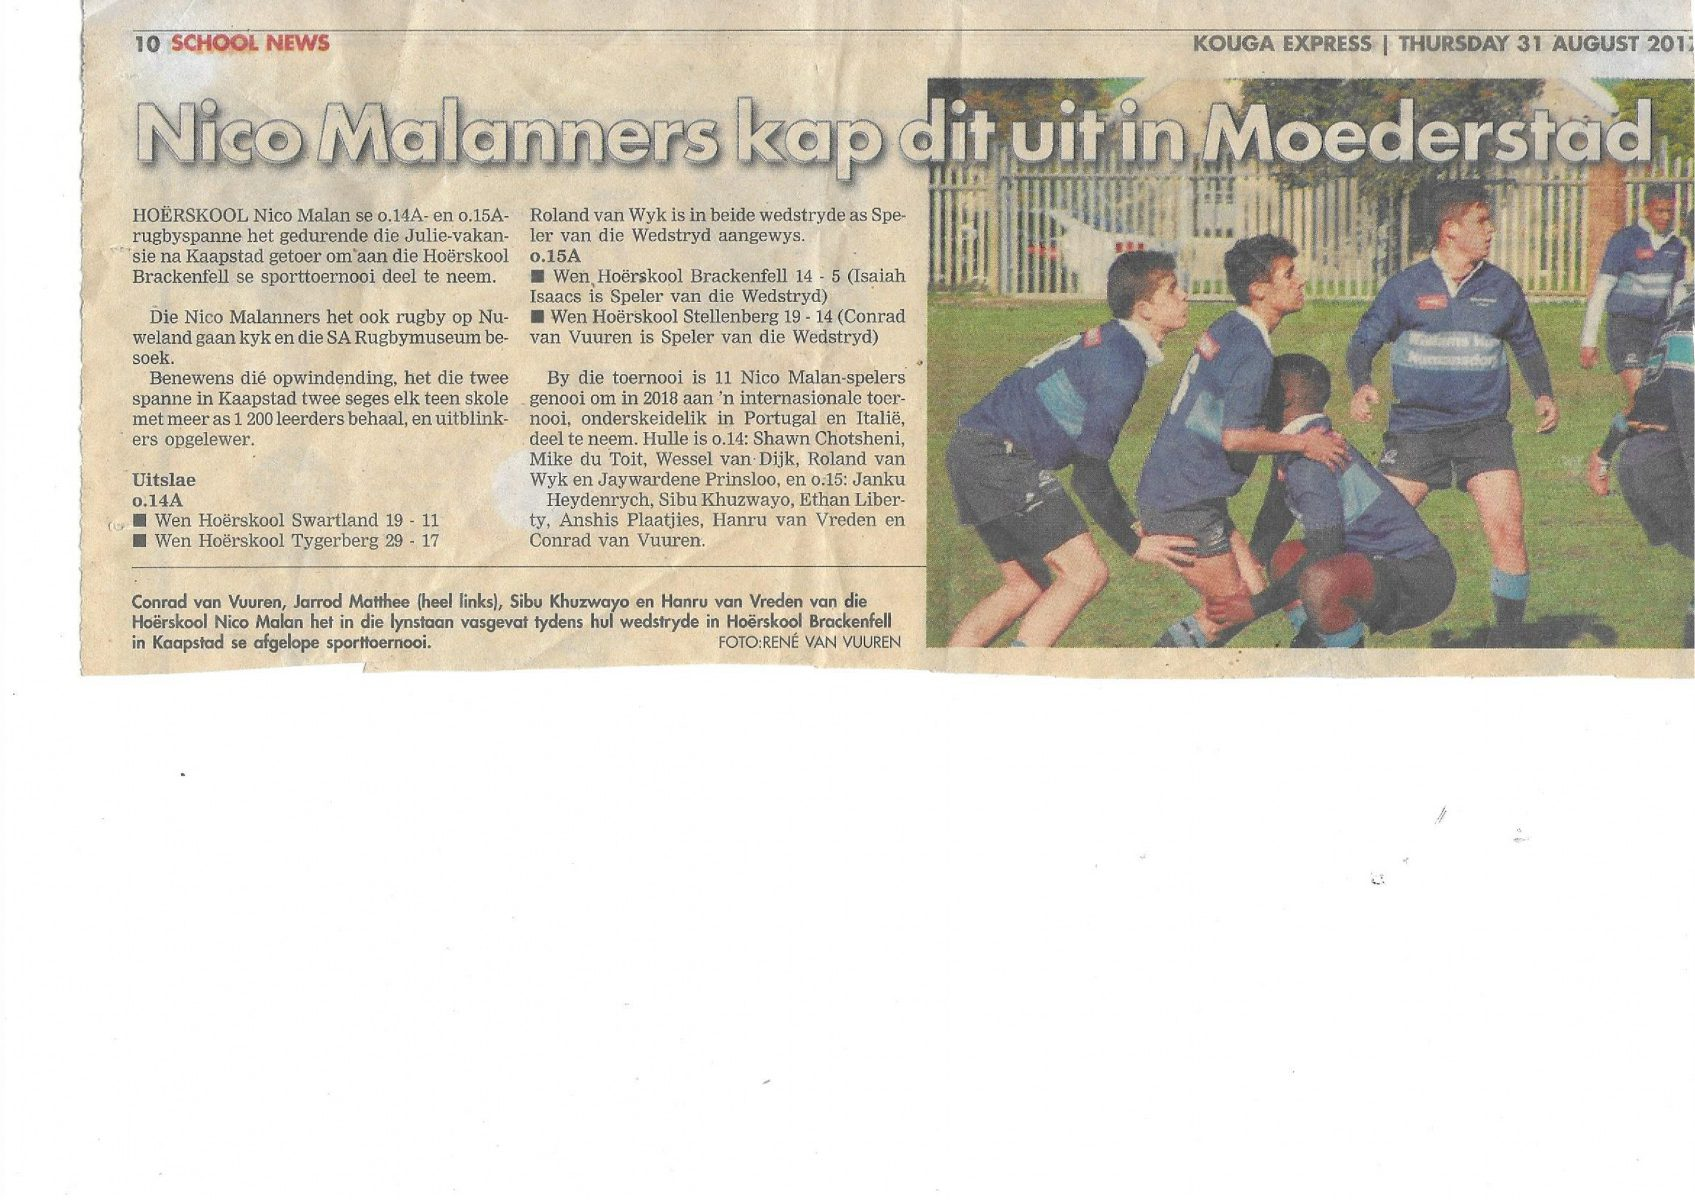 Wessel is mentioned as one of the invitees to an international rugby tournament in Portugal and Italy in this newspaper clipping.